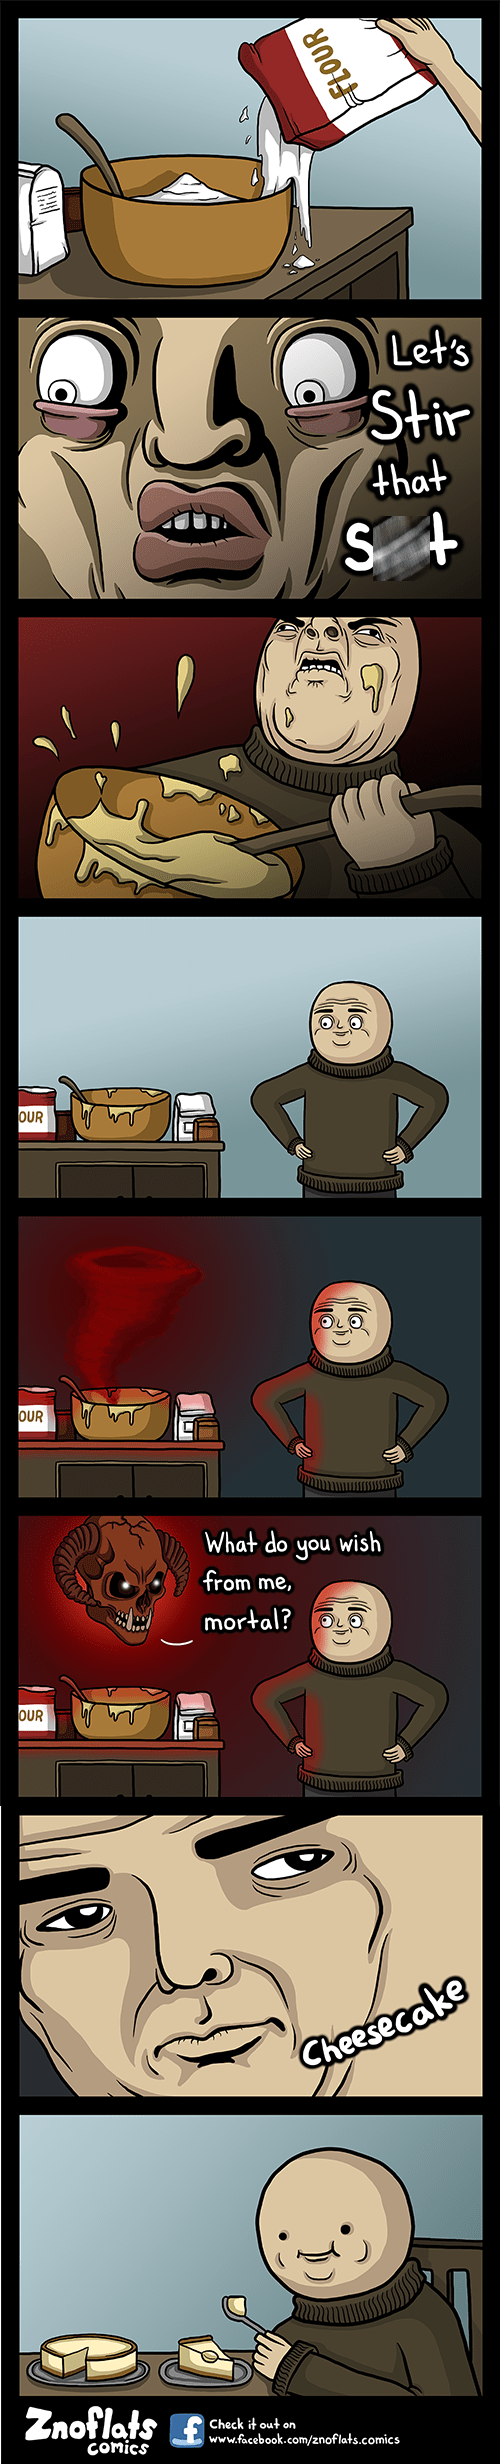 baking devil web comics - 7997769216